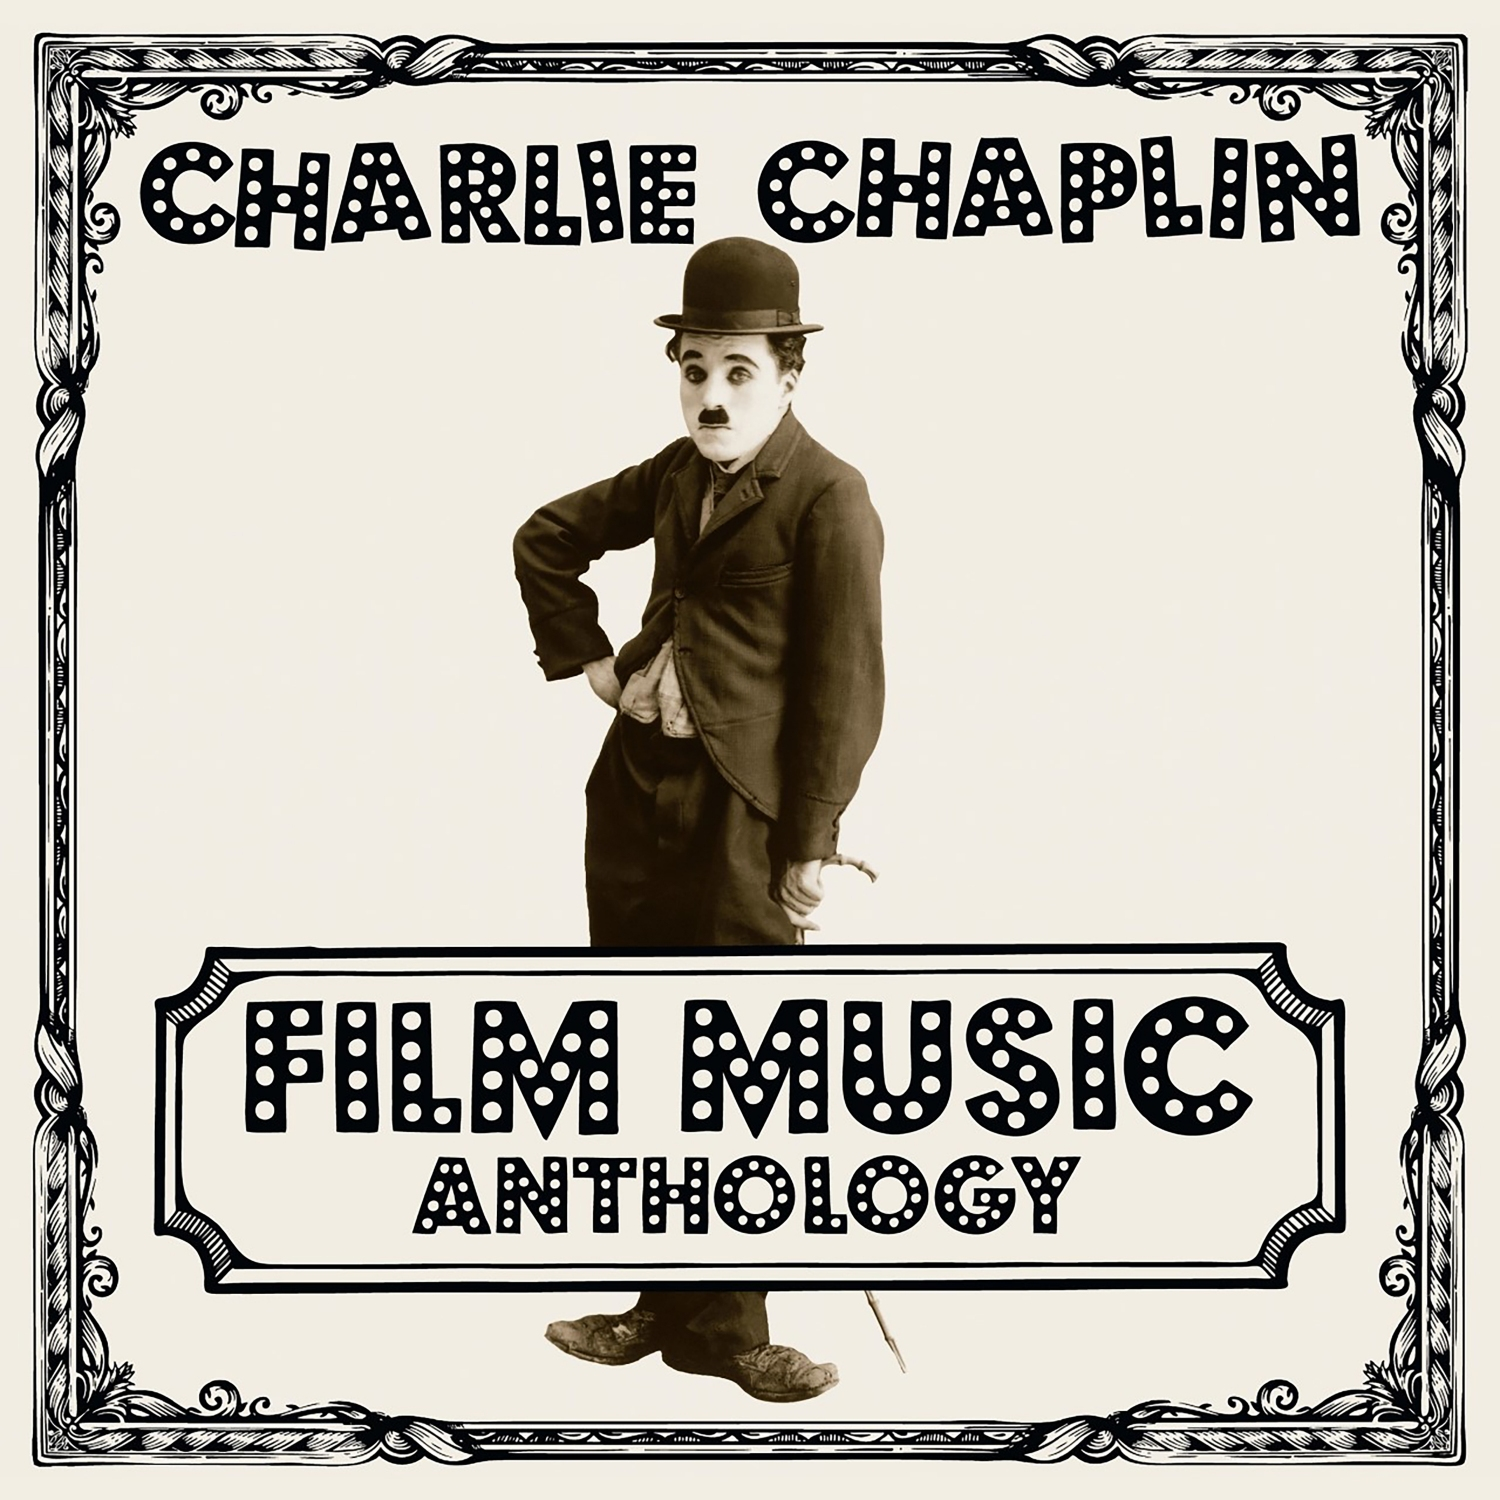 Caption: Charlie Chaplin - composer, Credit: Le Chant du Monde